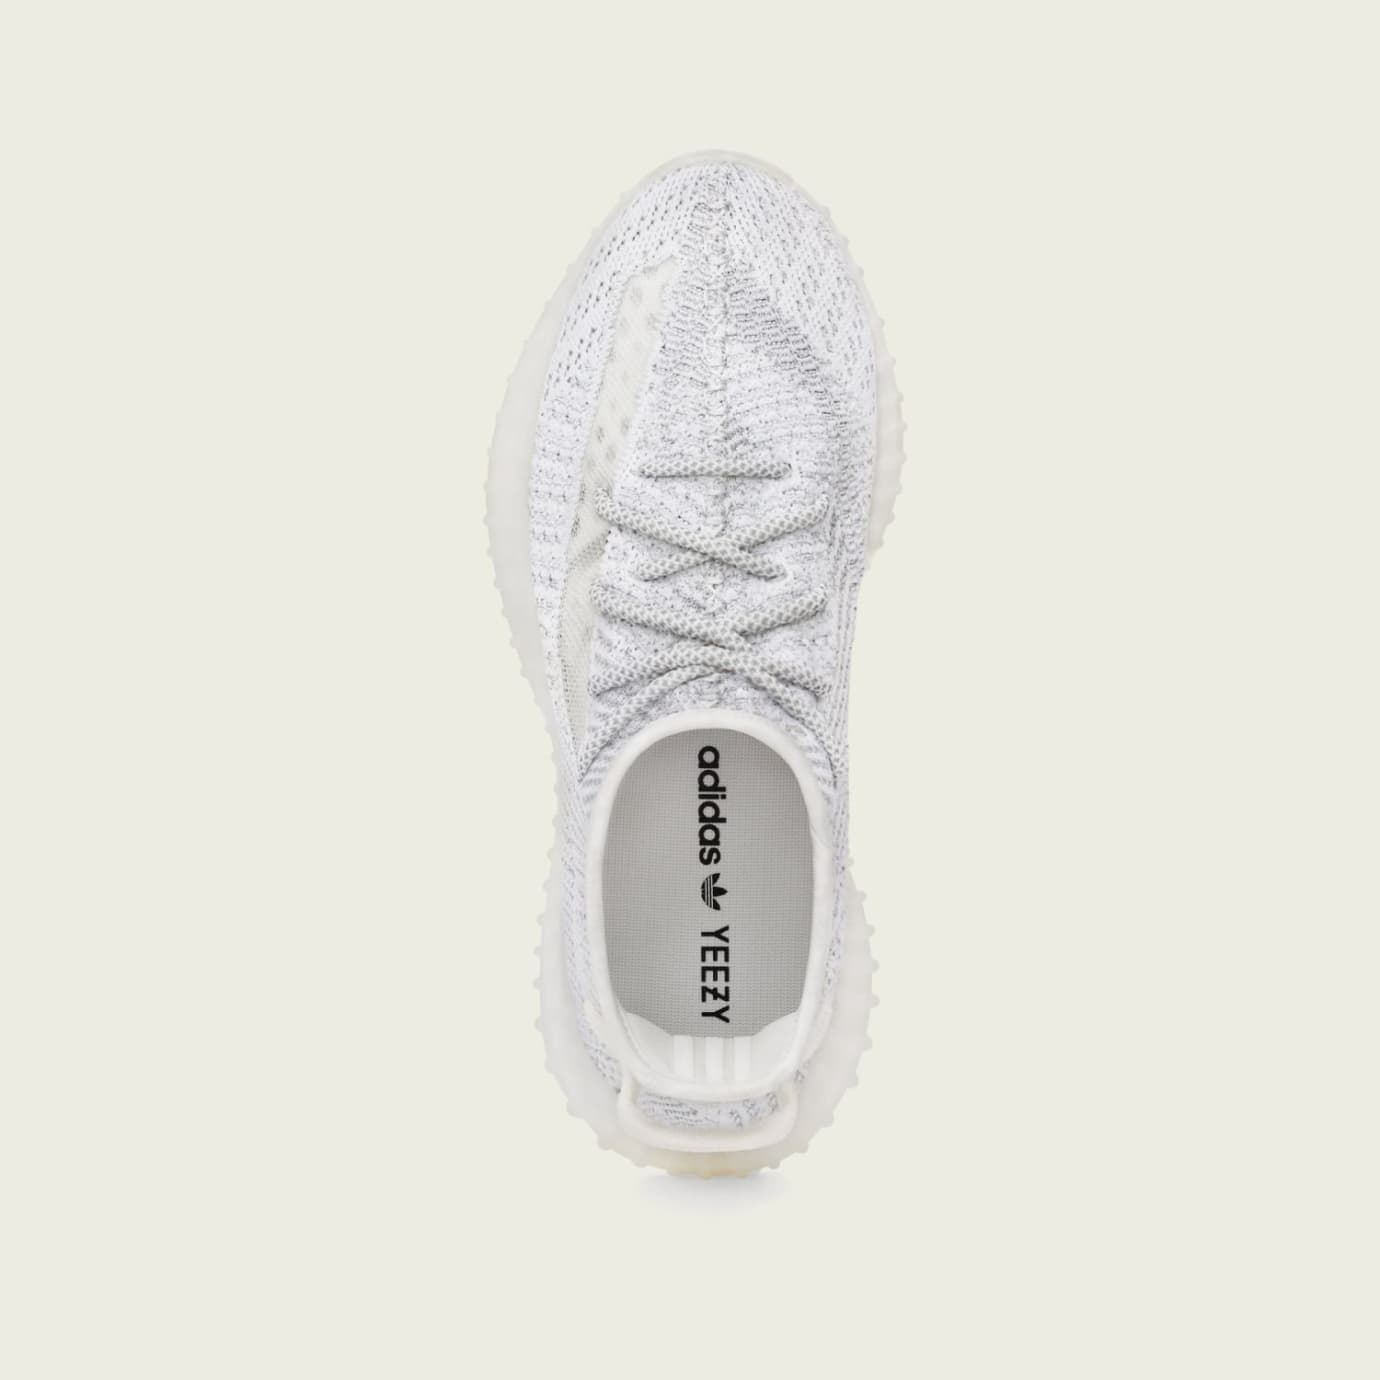 dec38f24124 Adidas Yeezy Boost 350 V2  Static  Release Date Dec. 2018 EF2905 ...